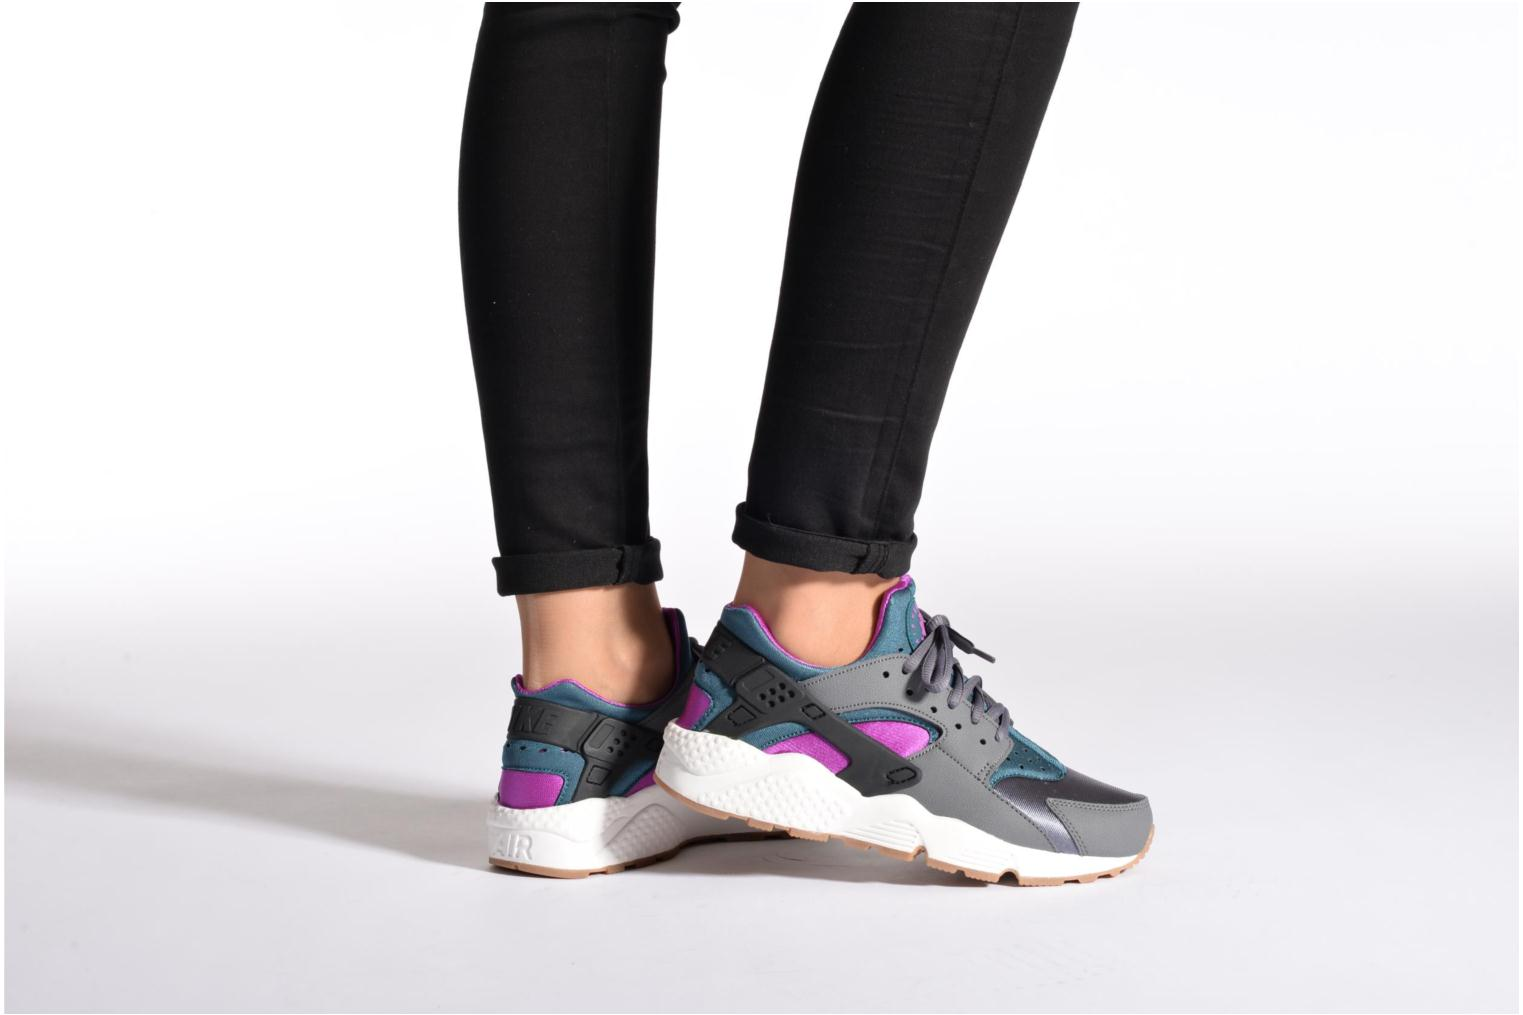 Wmns Air Huarache Run Pr Platinum/Brght Crmsn-Lyl Bl